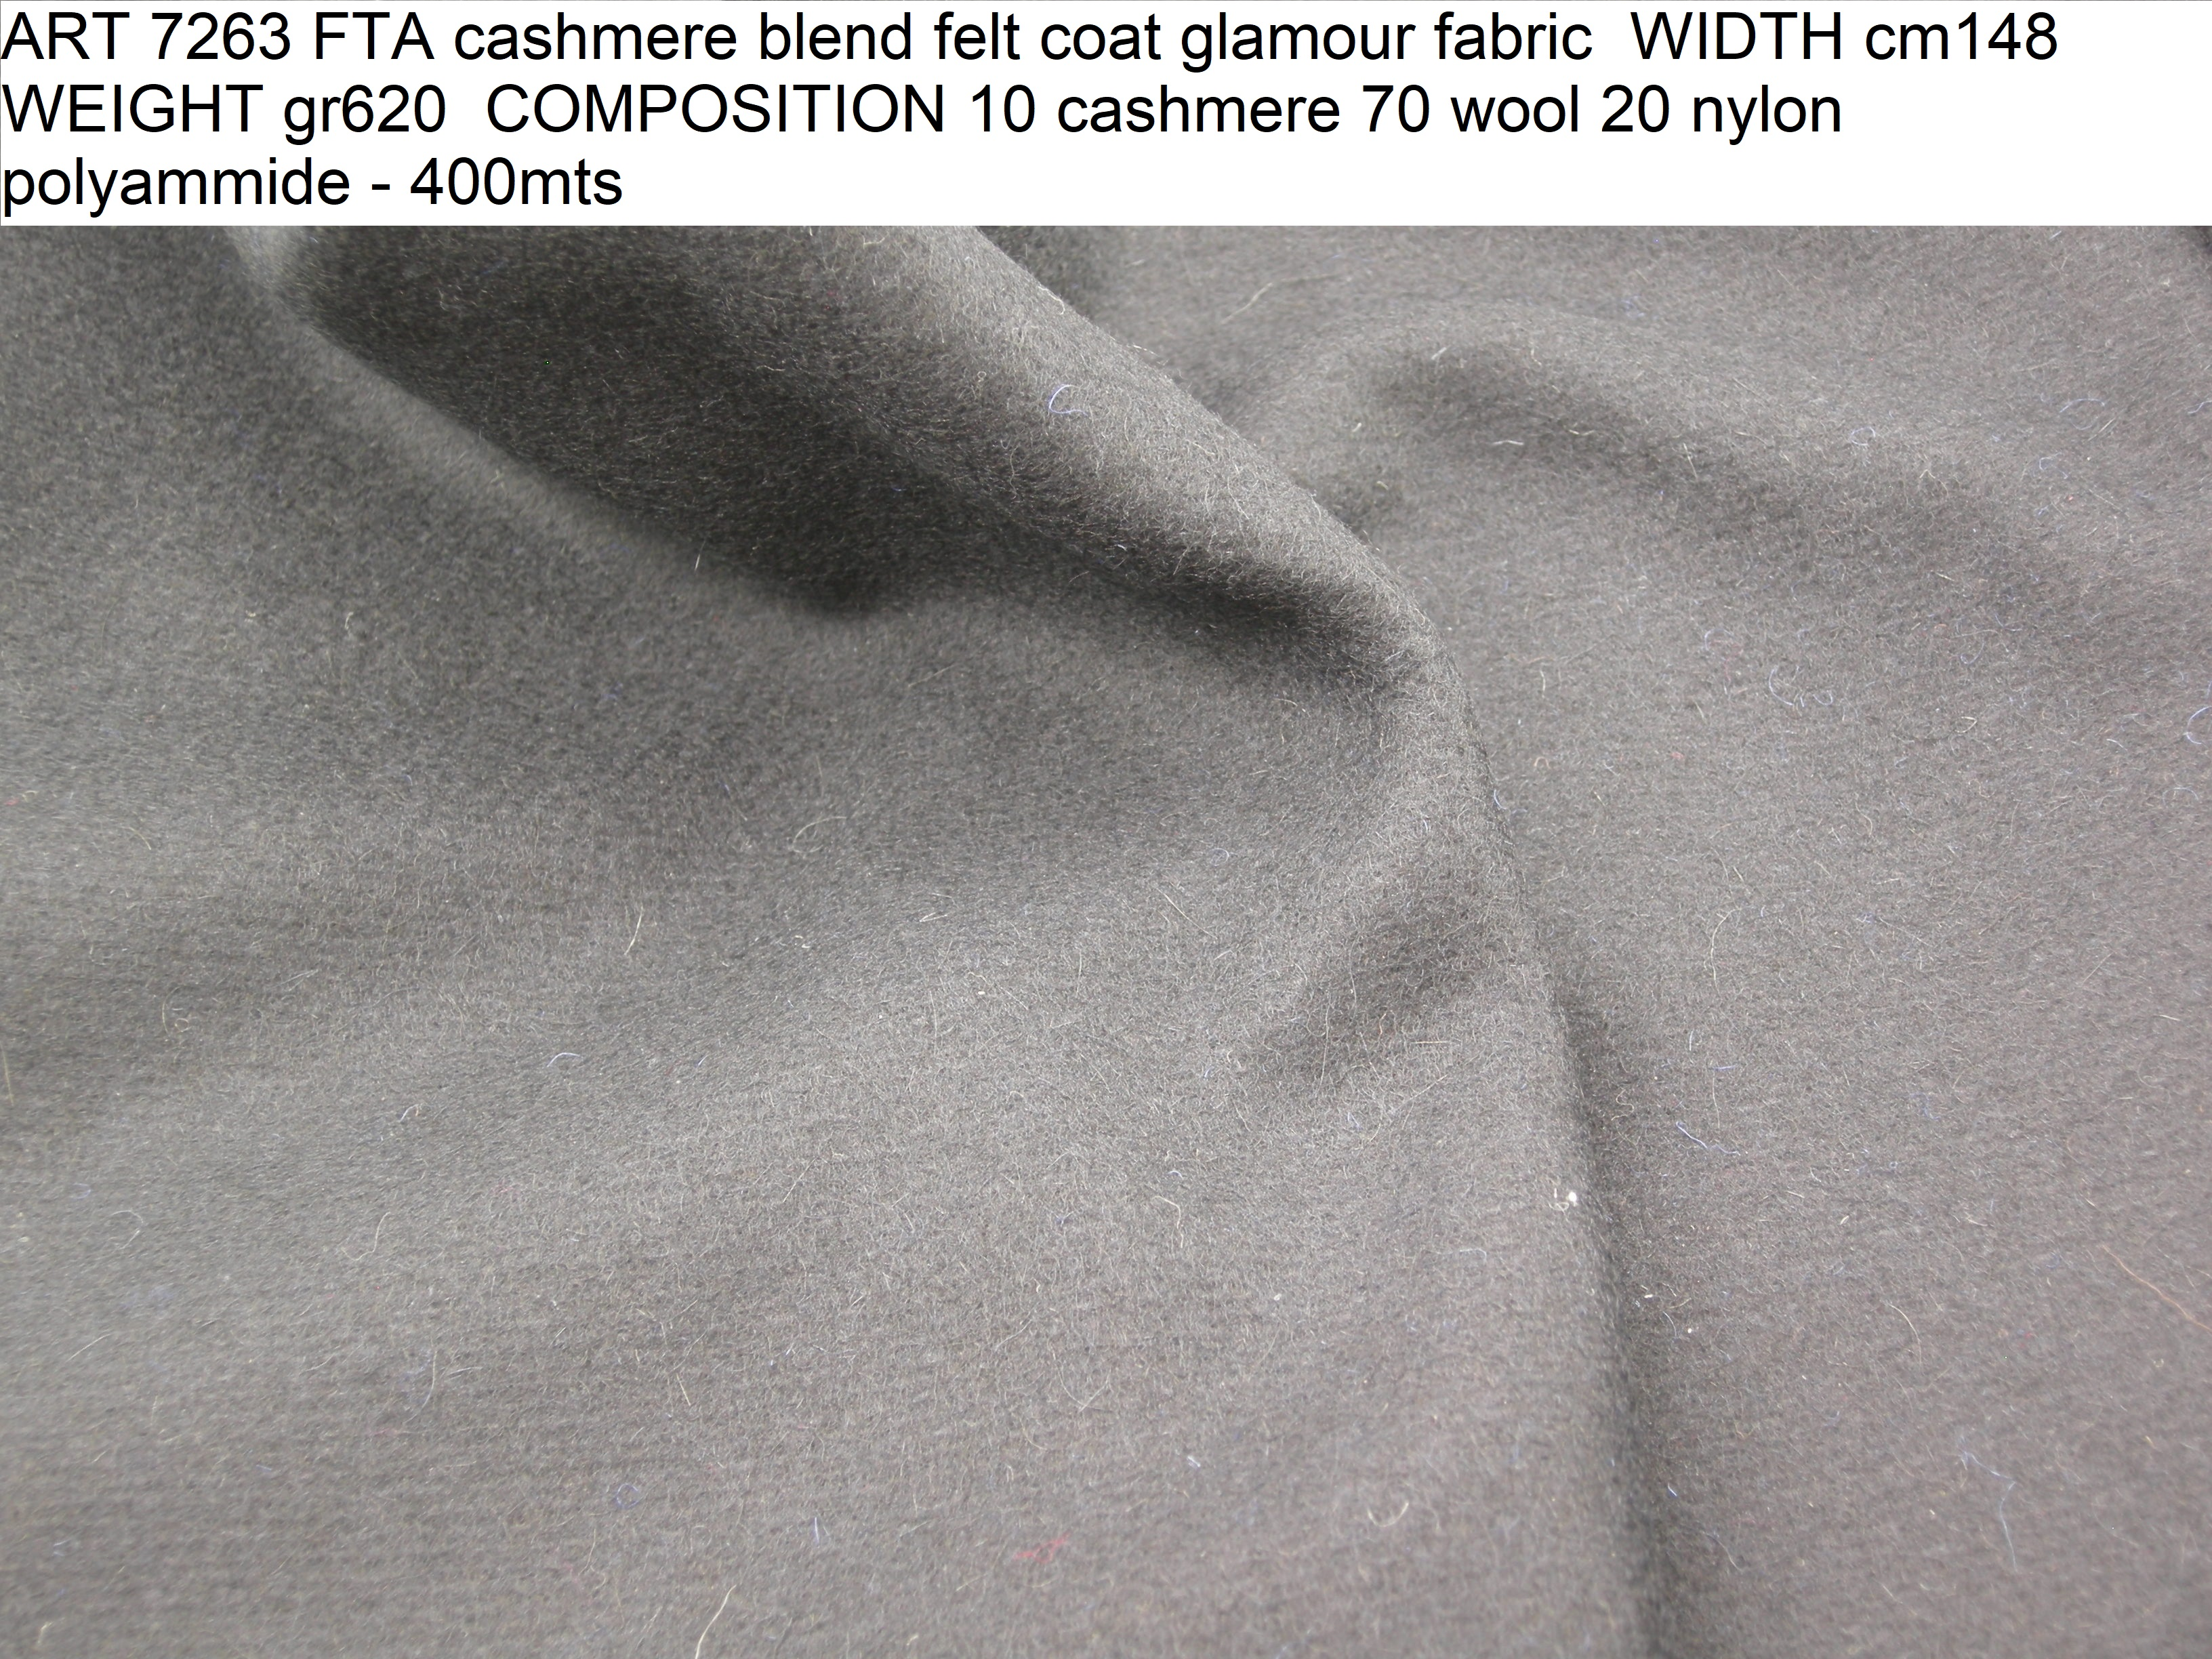 ART 7263 FTA cashmere blend felt coat glamour fabric WIDTH cm148 WEIGHT gr620 COMPOSITION 10 cashmere 70 wool 20 nylon polyammide - 400mts